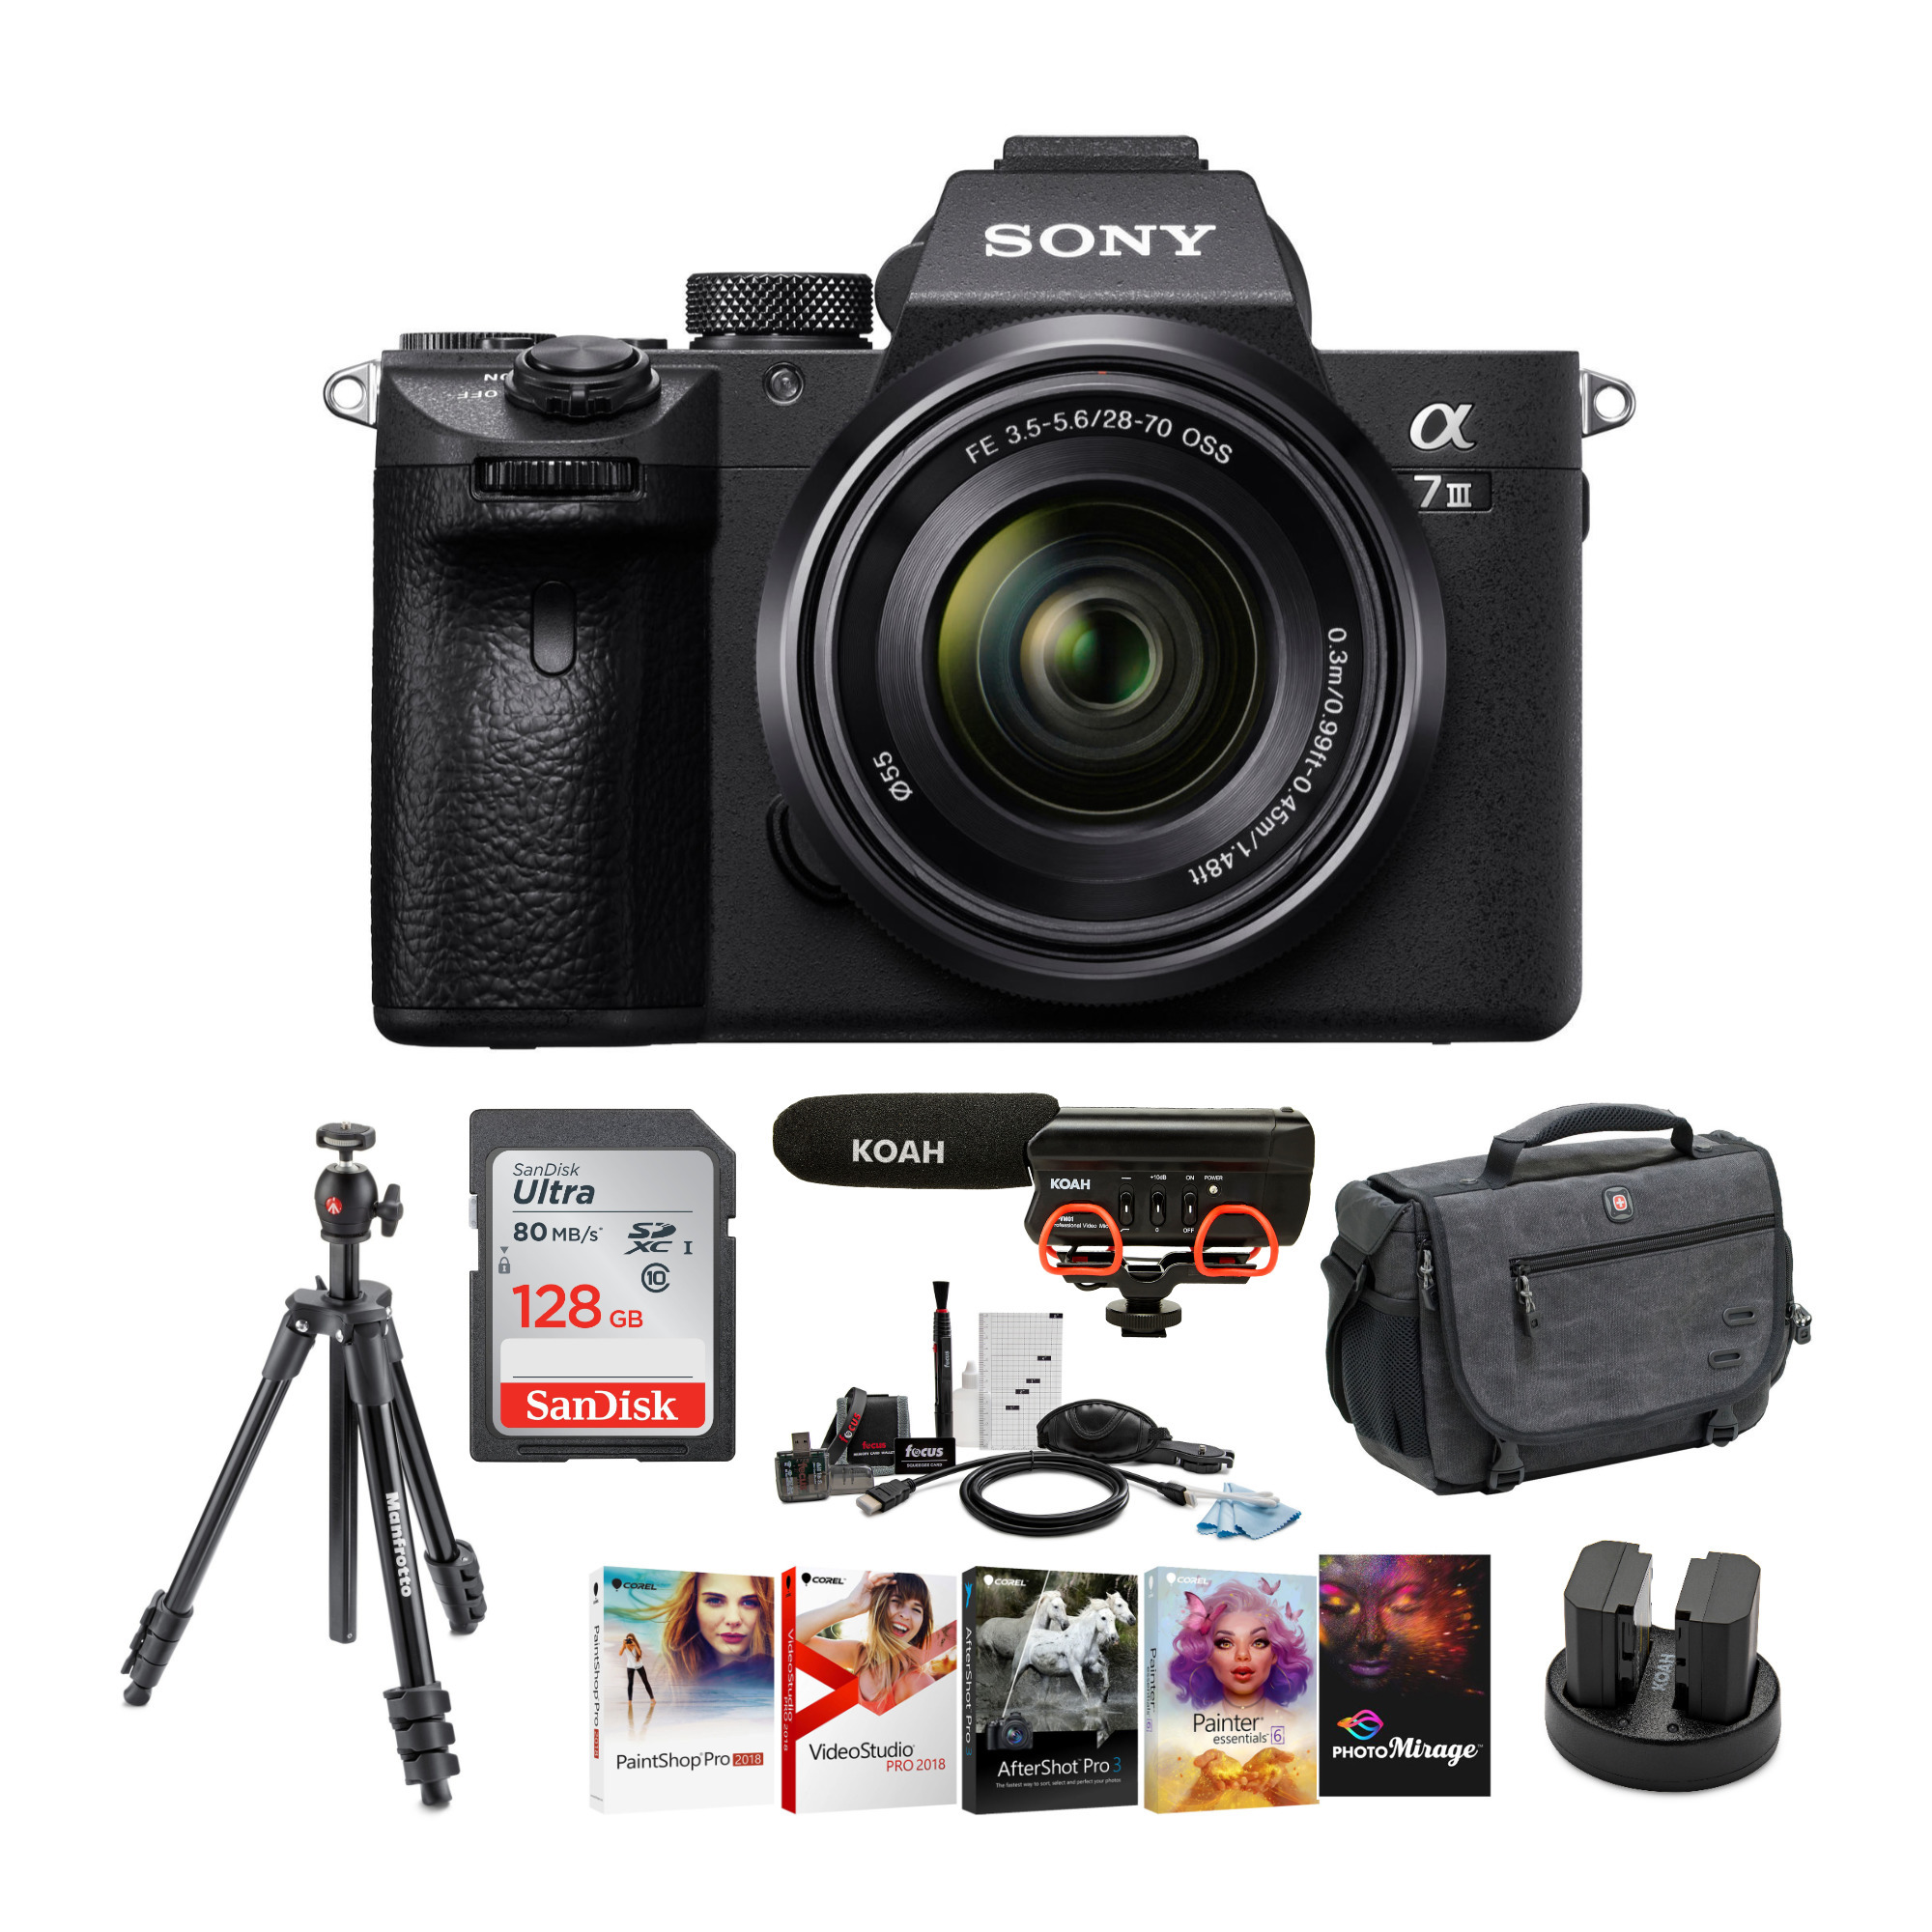 Sony Alpha a7iii Digital Camera with 28-70mm Lens and Accessory Bundle